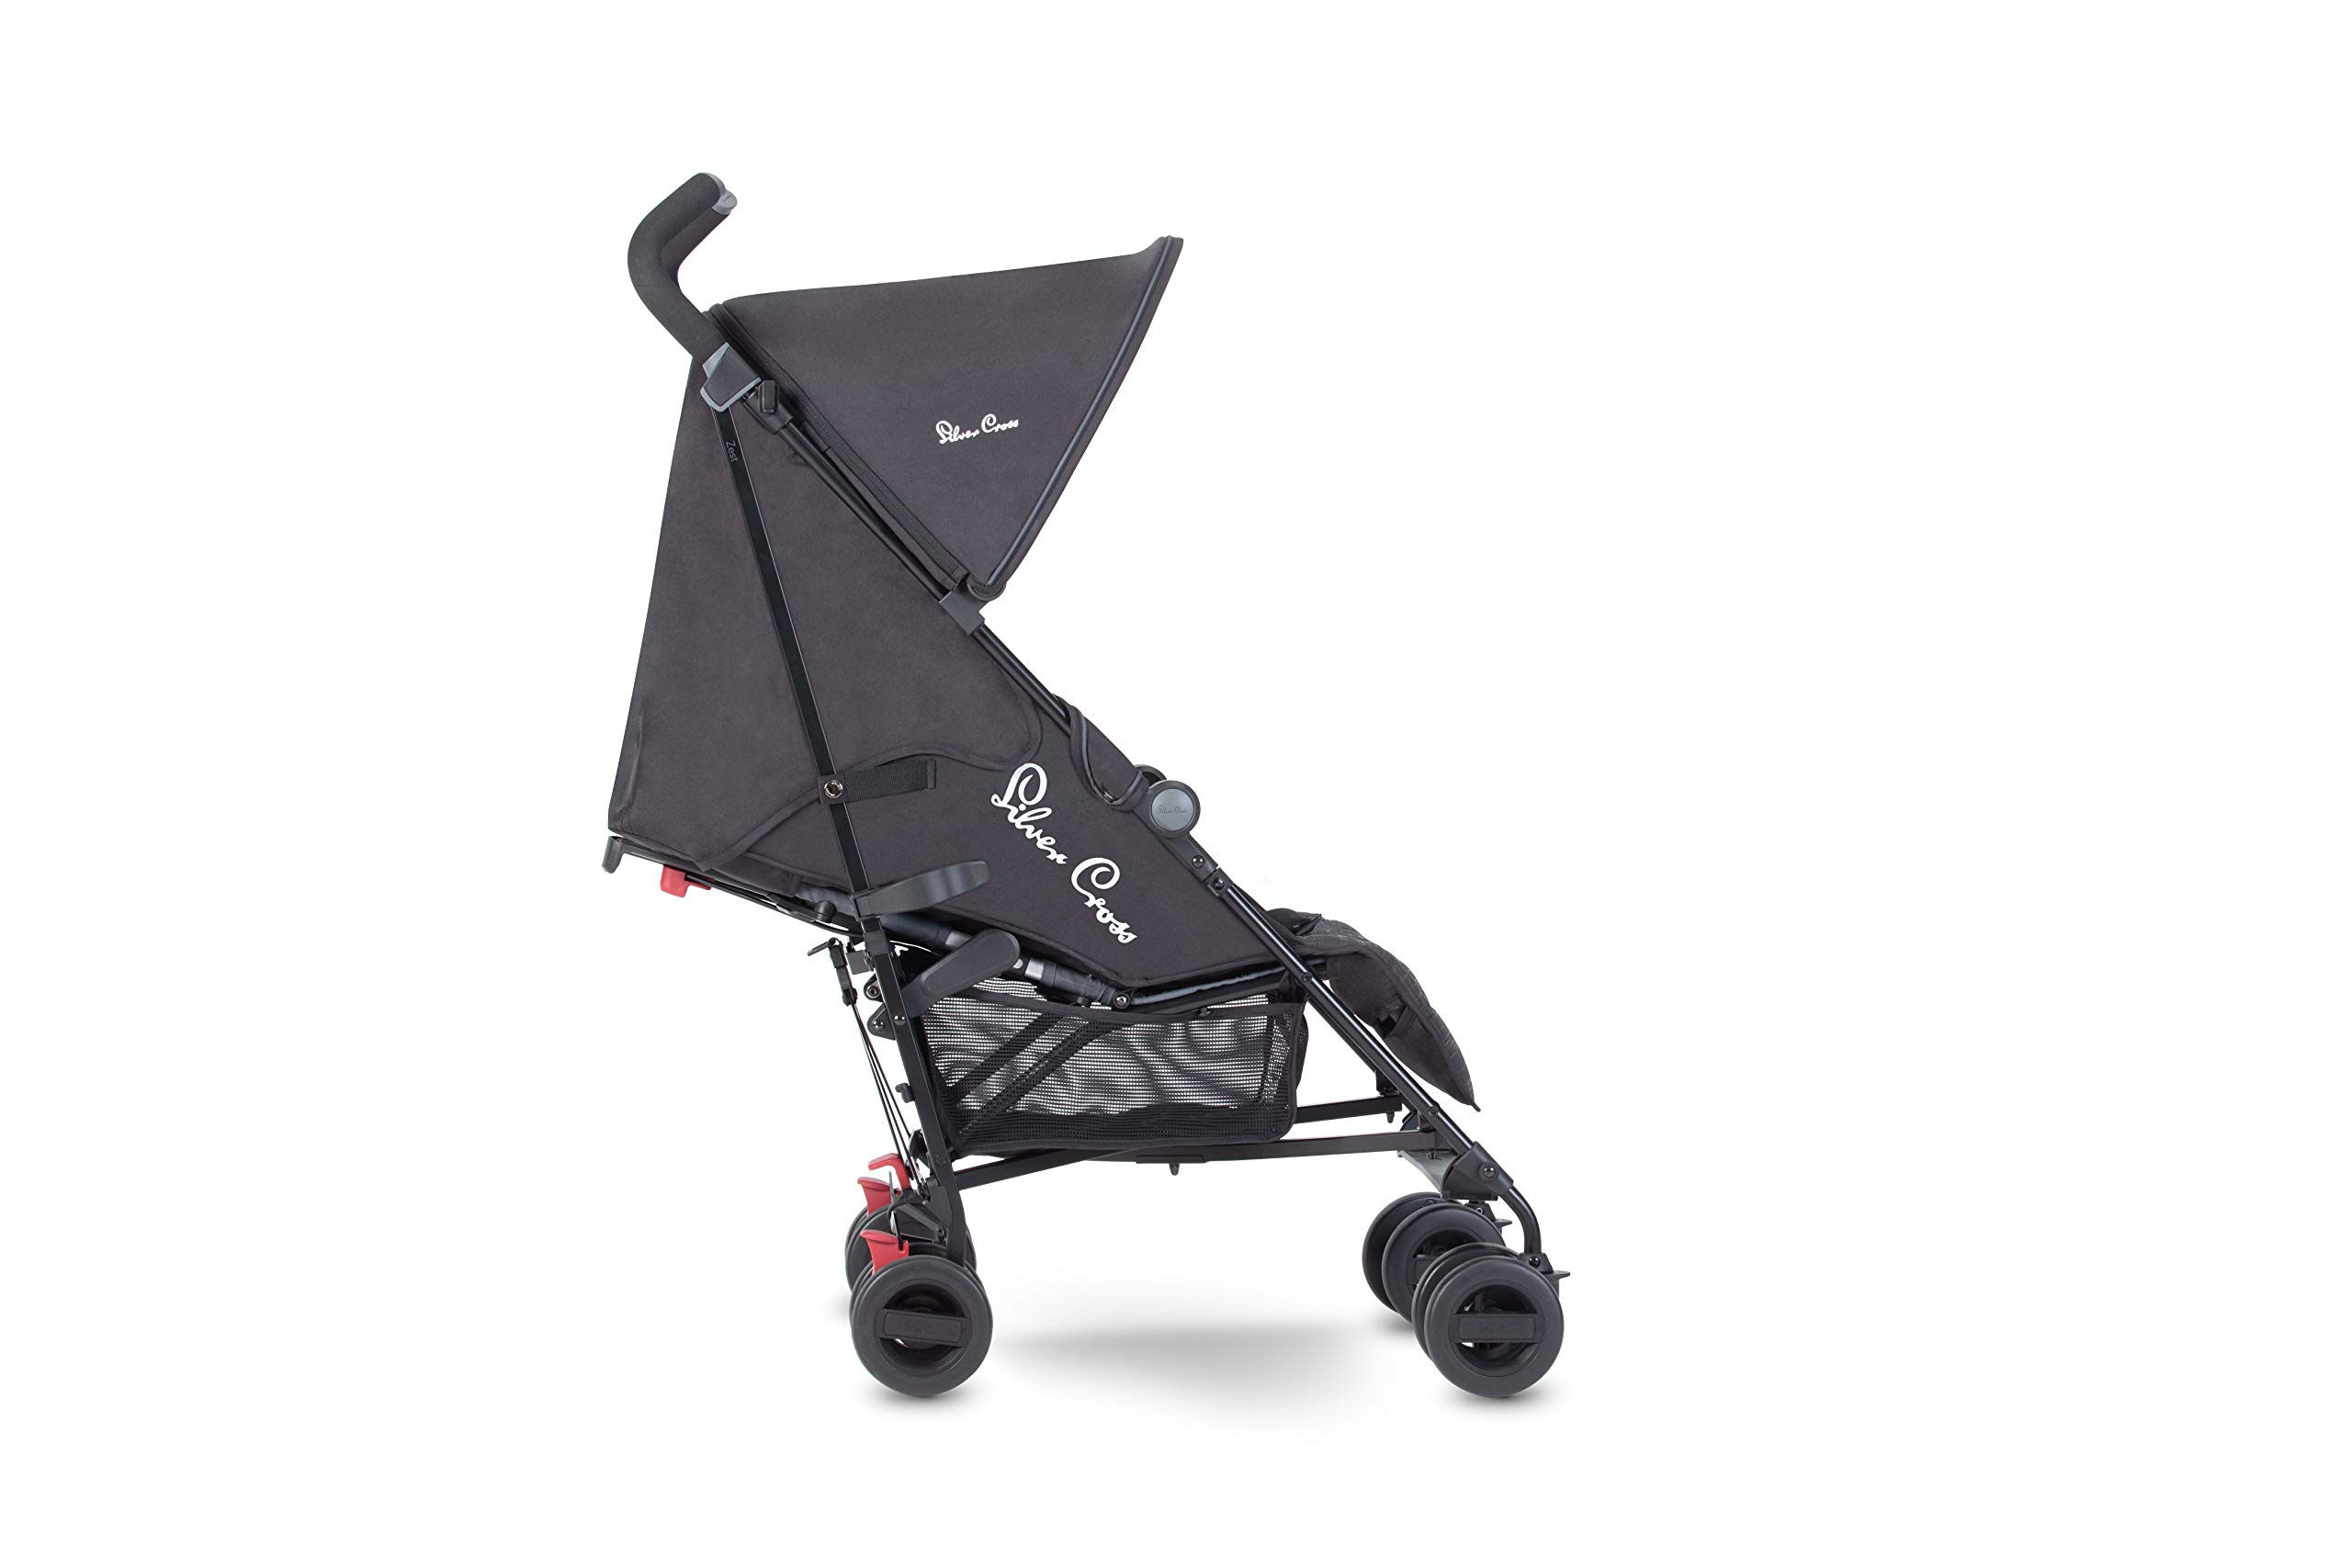 Silver Cross Zest Charcoal Black Silver Cross Ultra lightweight zest pushchair, weighing in at only 5.8kg, is suitable from birth up to 25kg It has a convenient one-hand fold, while the compact design makes it easy to store The fully lie-flat recline is best in its class 2